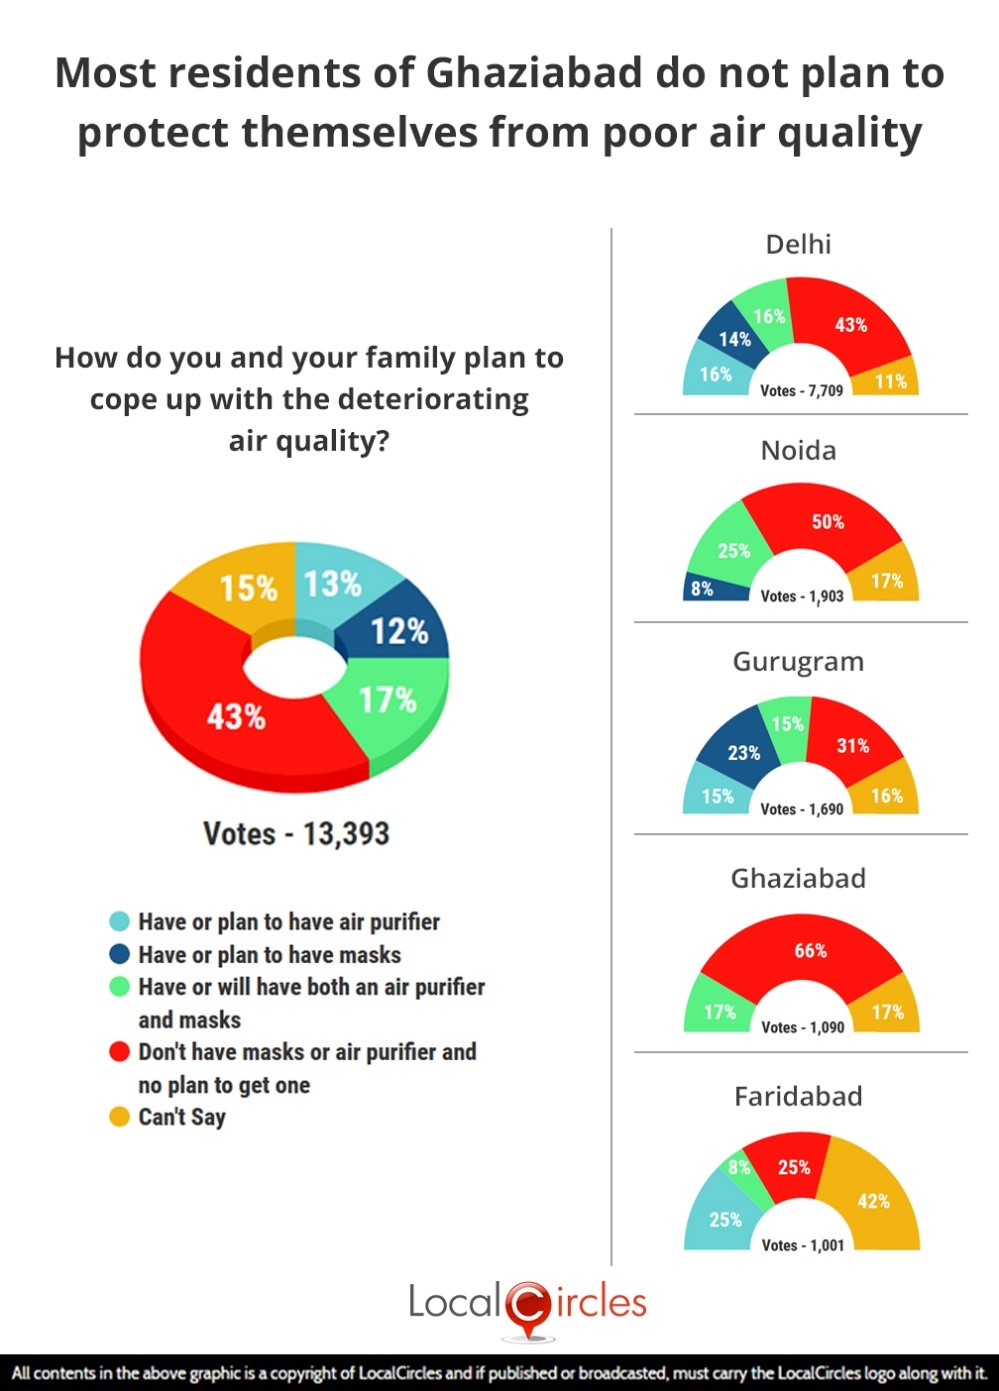 LocalCircles Poll - Most residents of Ghaziabad do not plan to protect themselves from poor air quality